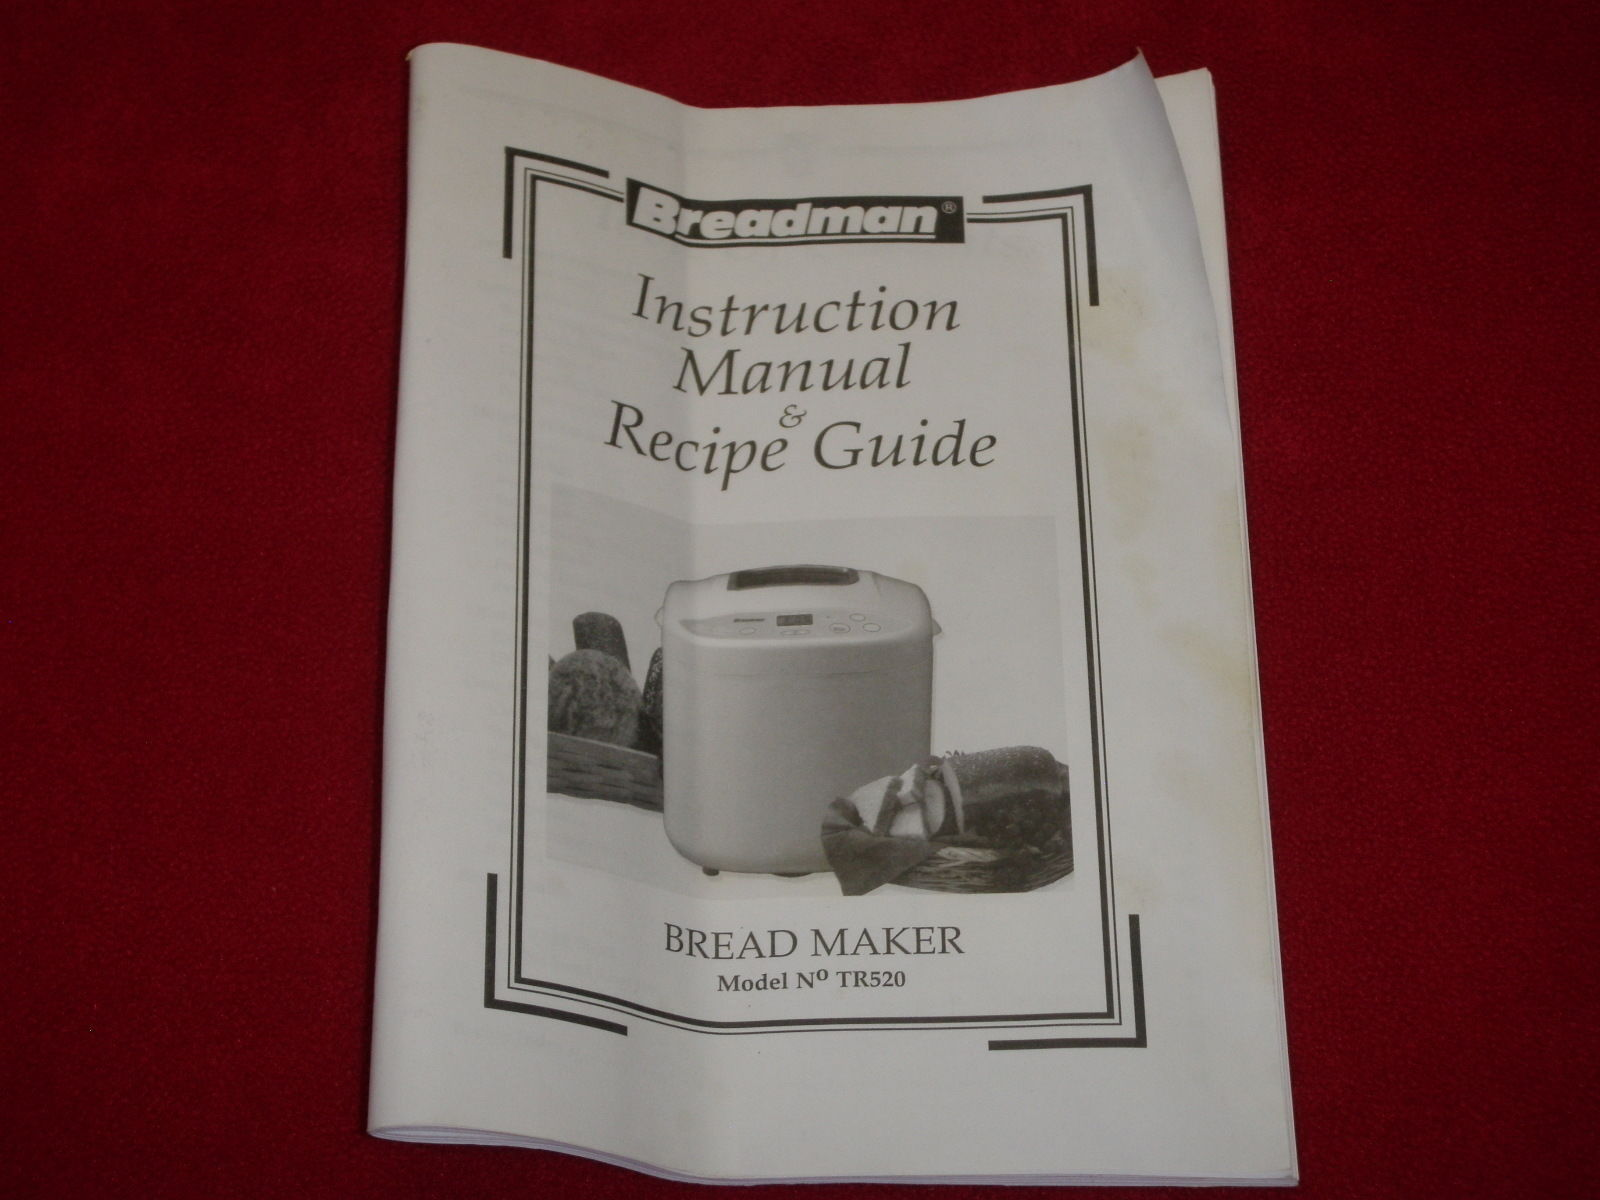 breadman bread machine instruction manual and 50 similar items rh bonanza com Oster 5838 Bread Machine Manual Oster Bread Machine Manual 4811